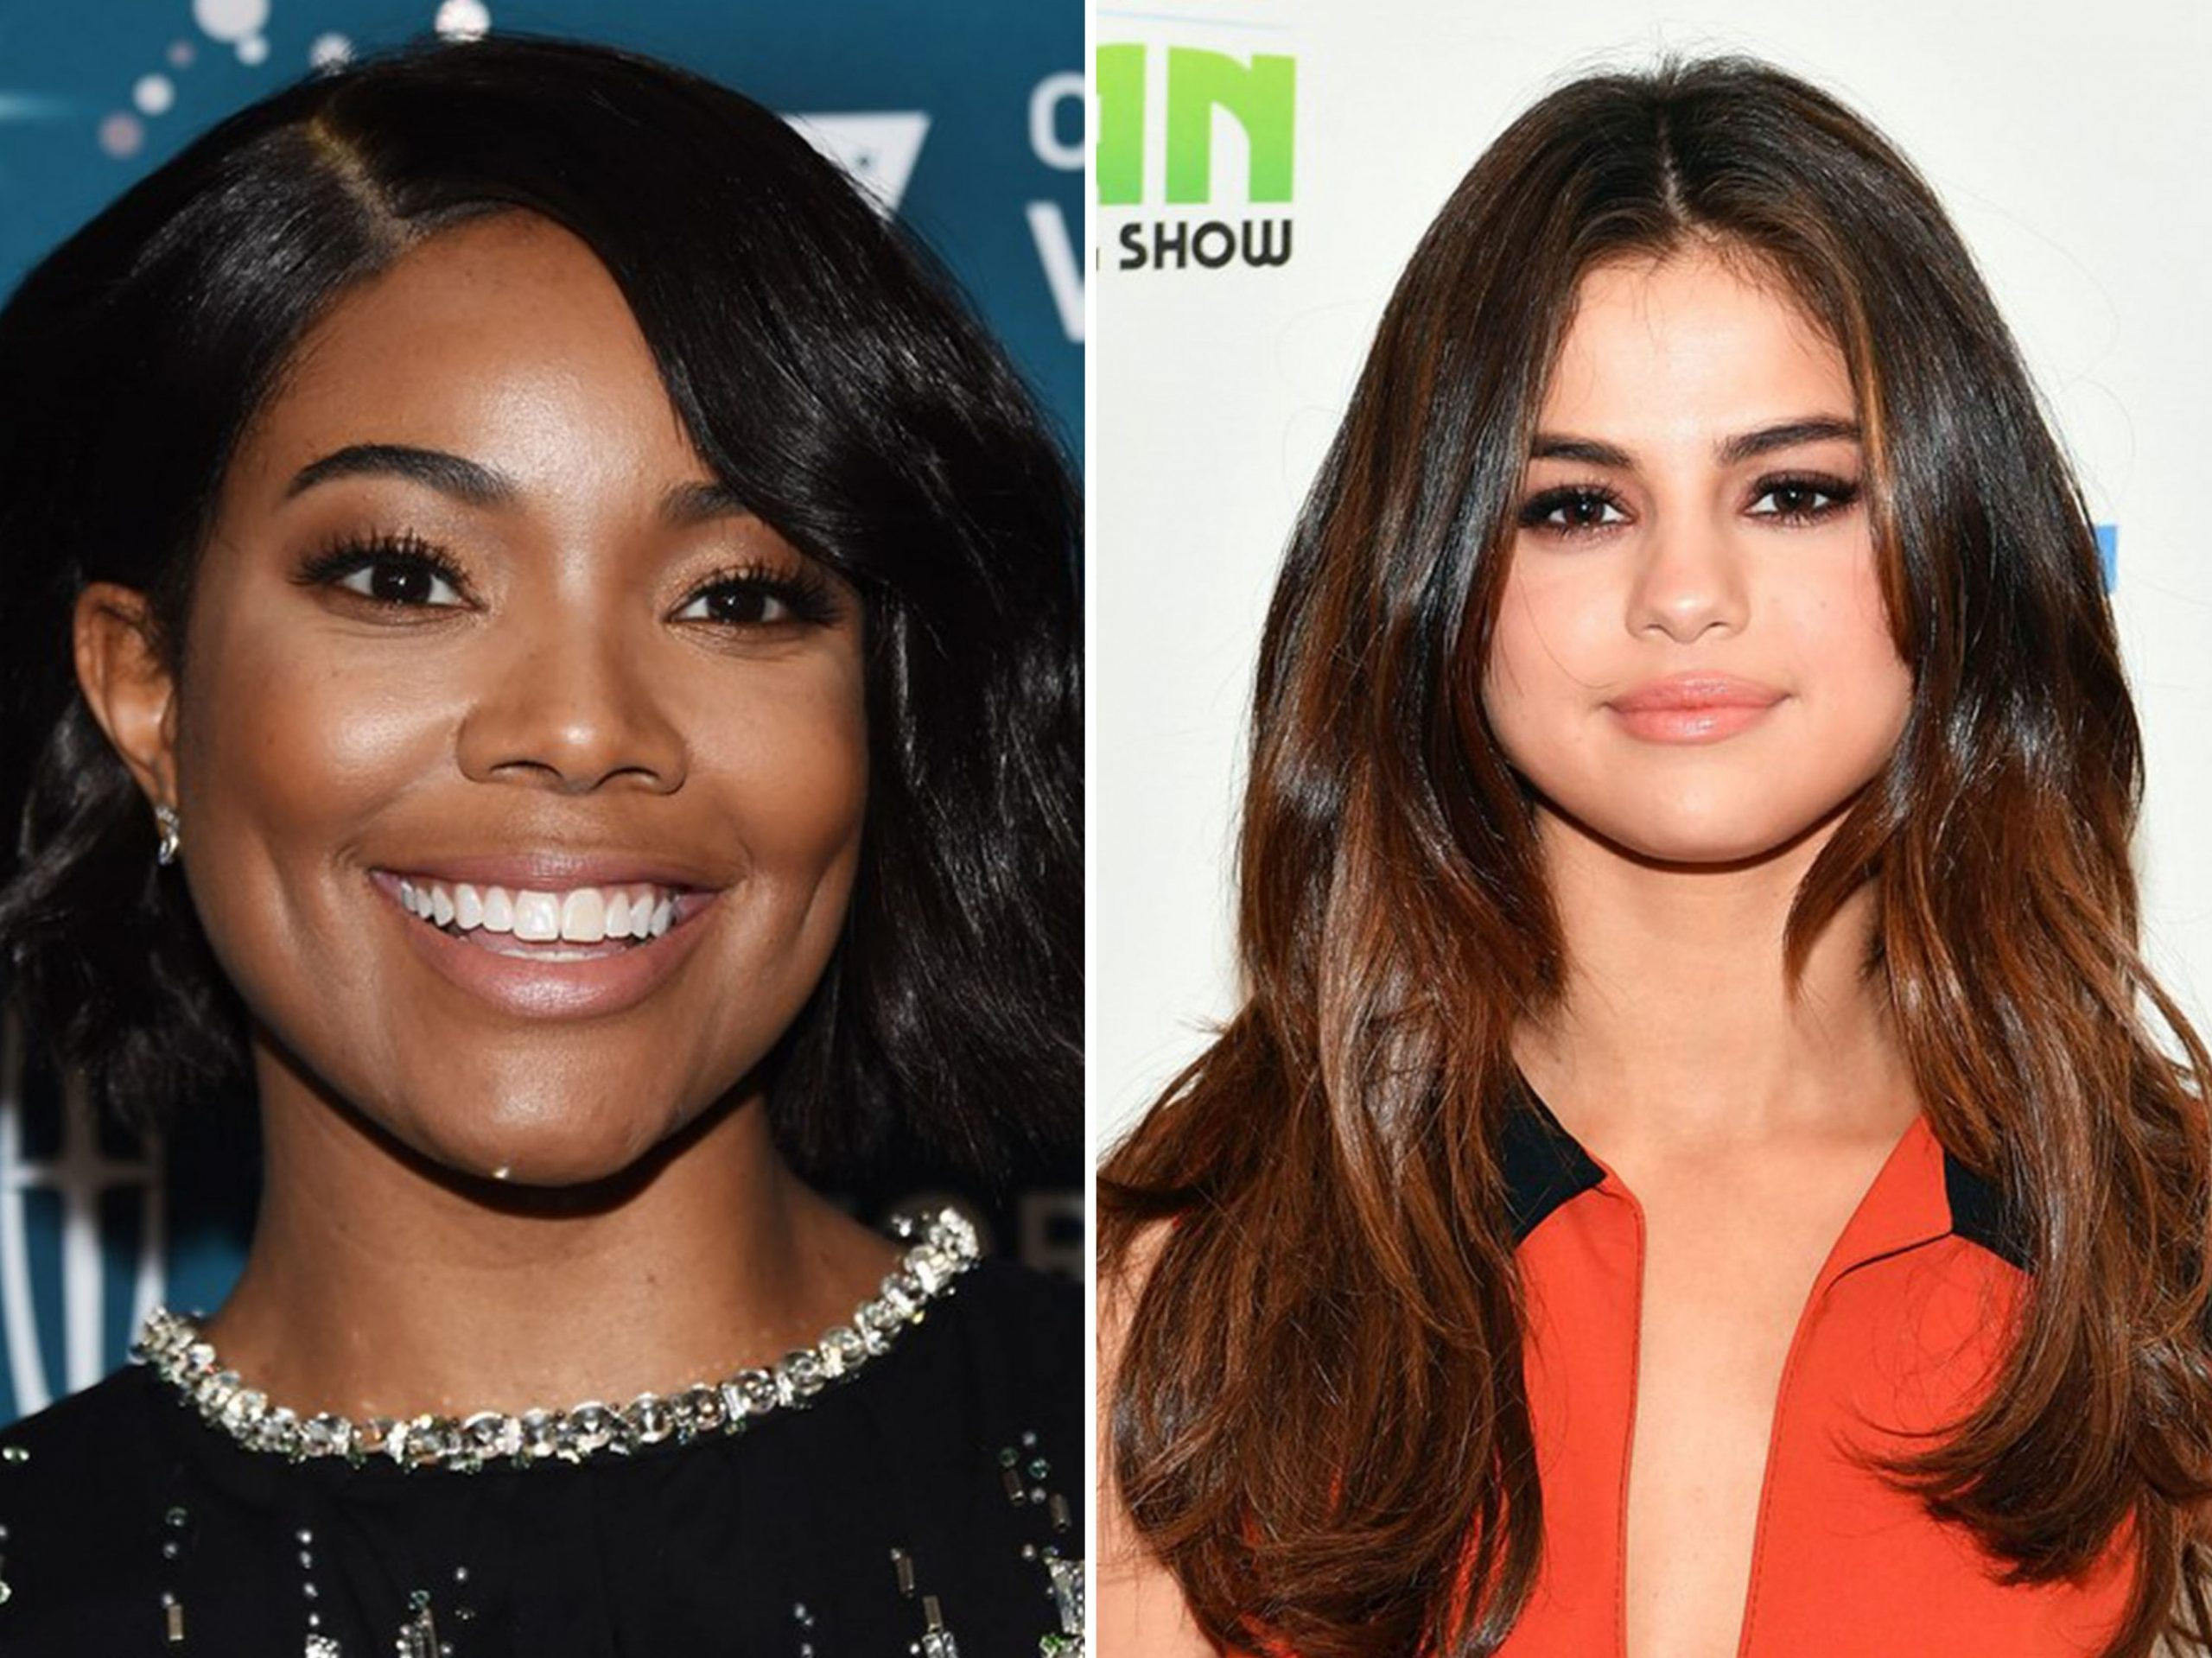 The 12 Best Haircuts For Round Faces, According To Stylists Allure Round Face Shape Haircuts